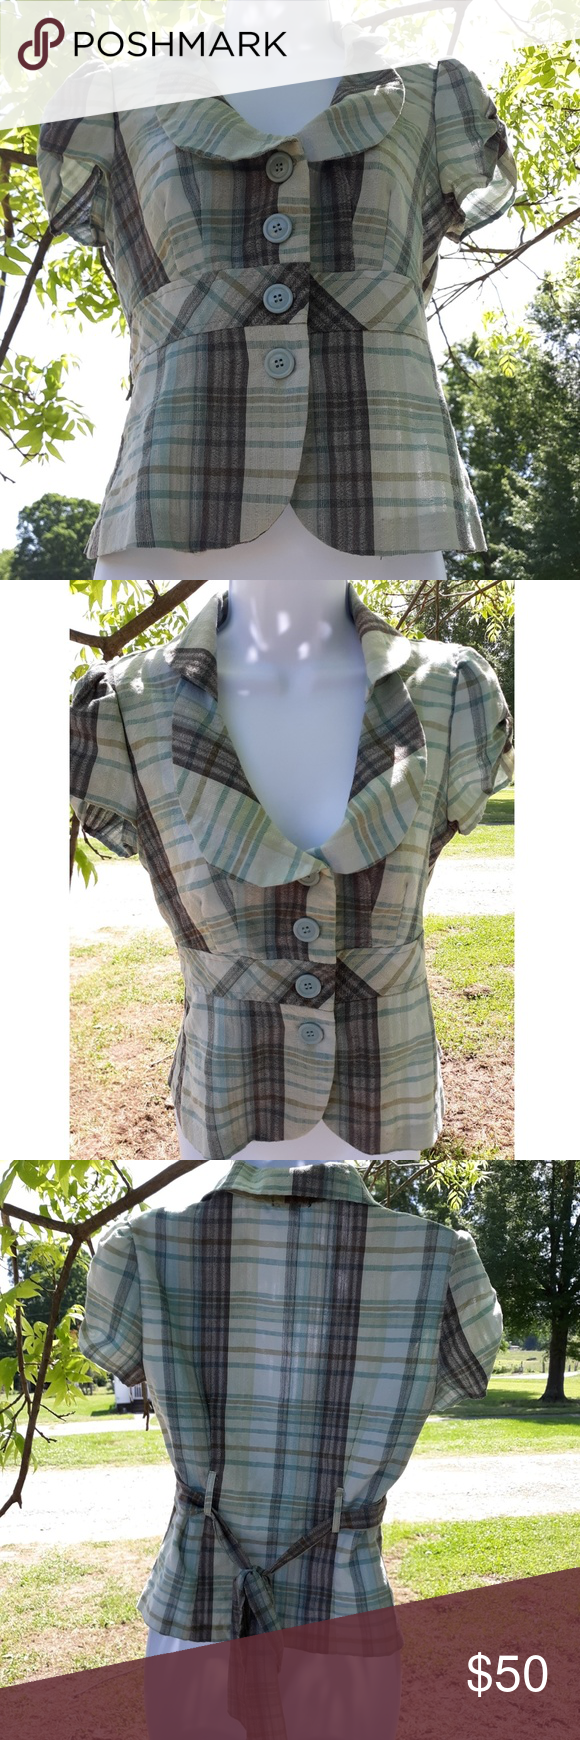 Green Plaid Earth-toned Business Attire Listing many items today!! Details about this coming soon! Thanks for your patience!! Clean & smoke-free home